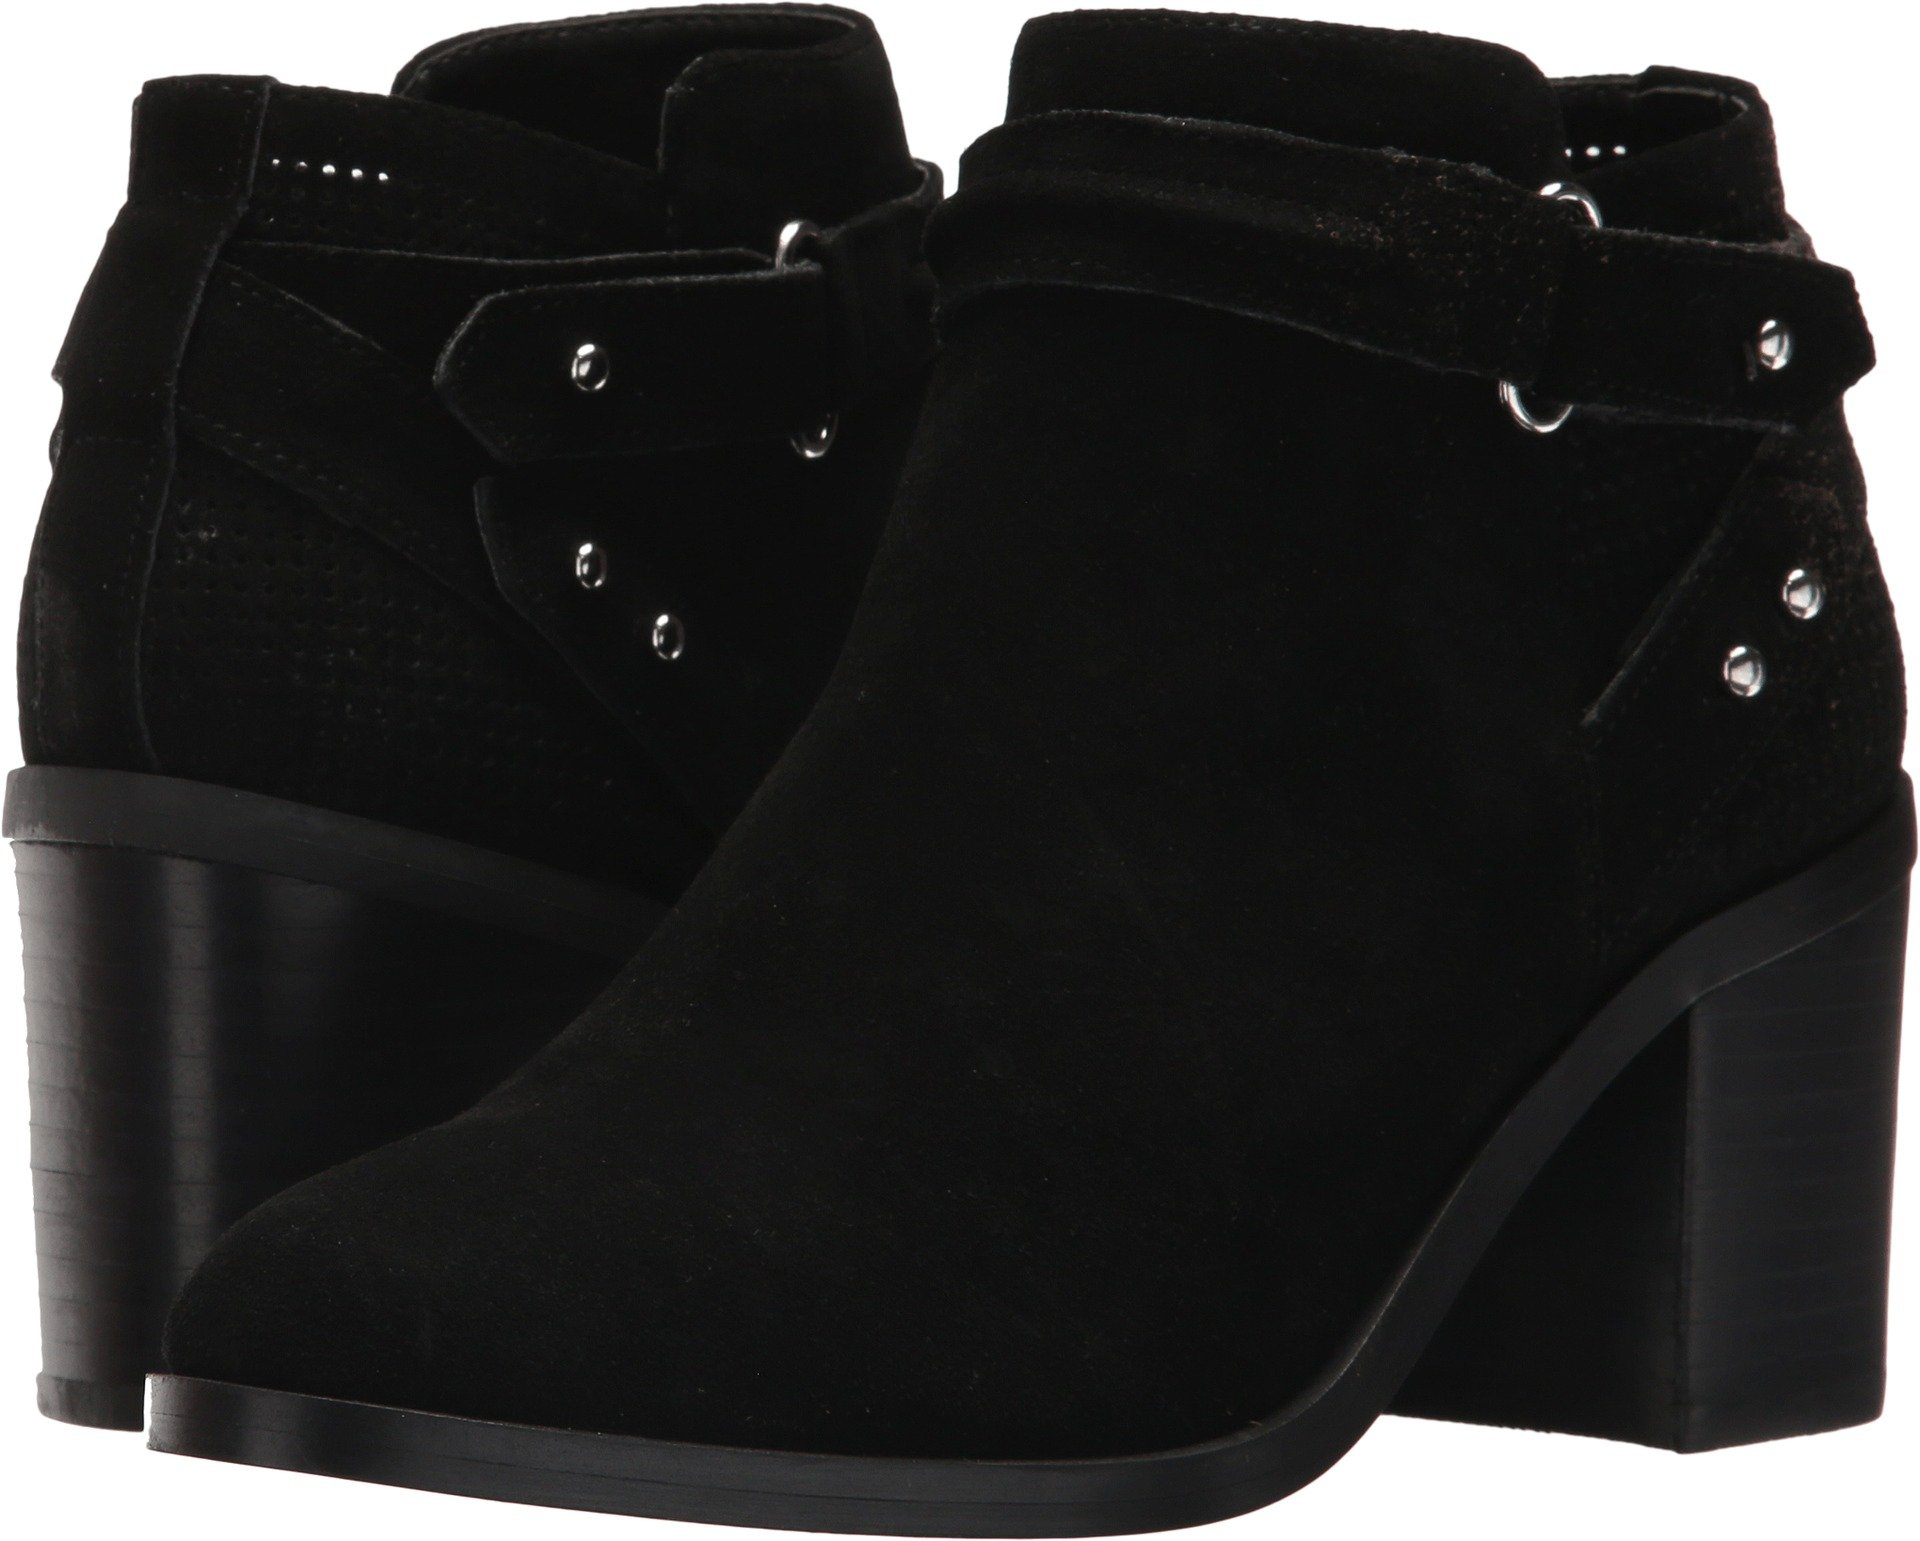 Steve Madden Women's Pati Ankle Boot, Black Suede, 9 M US